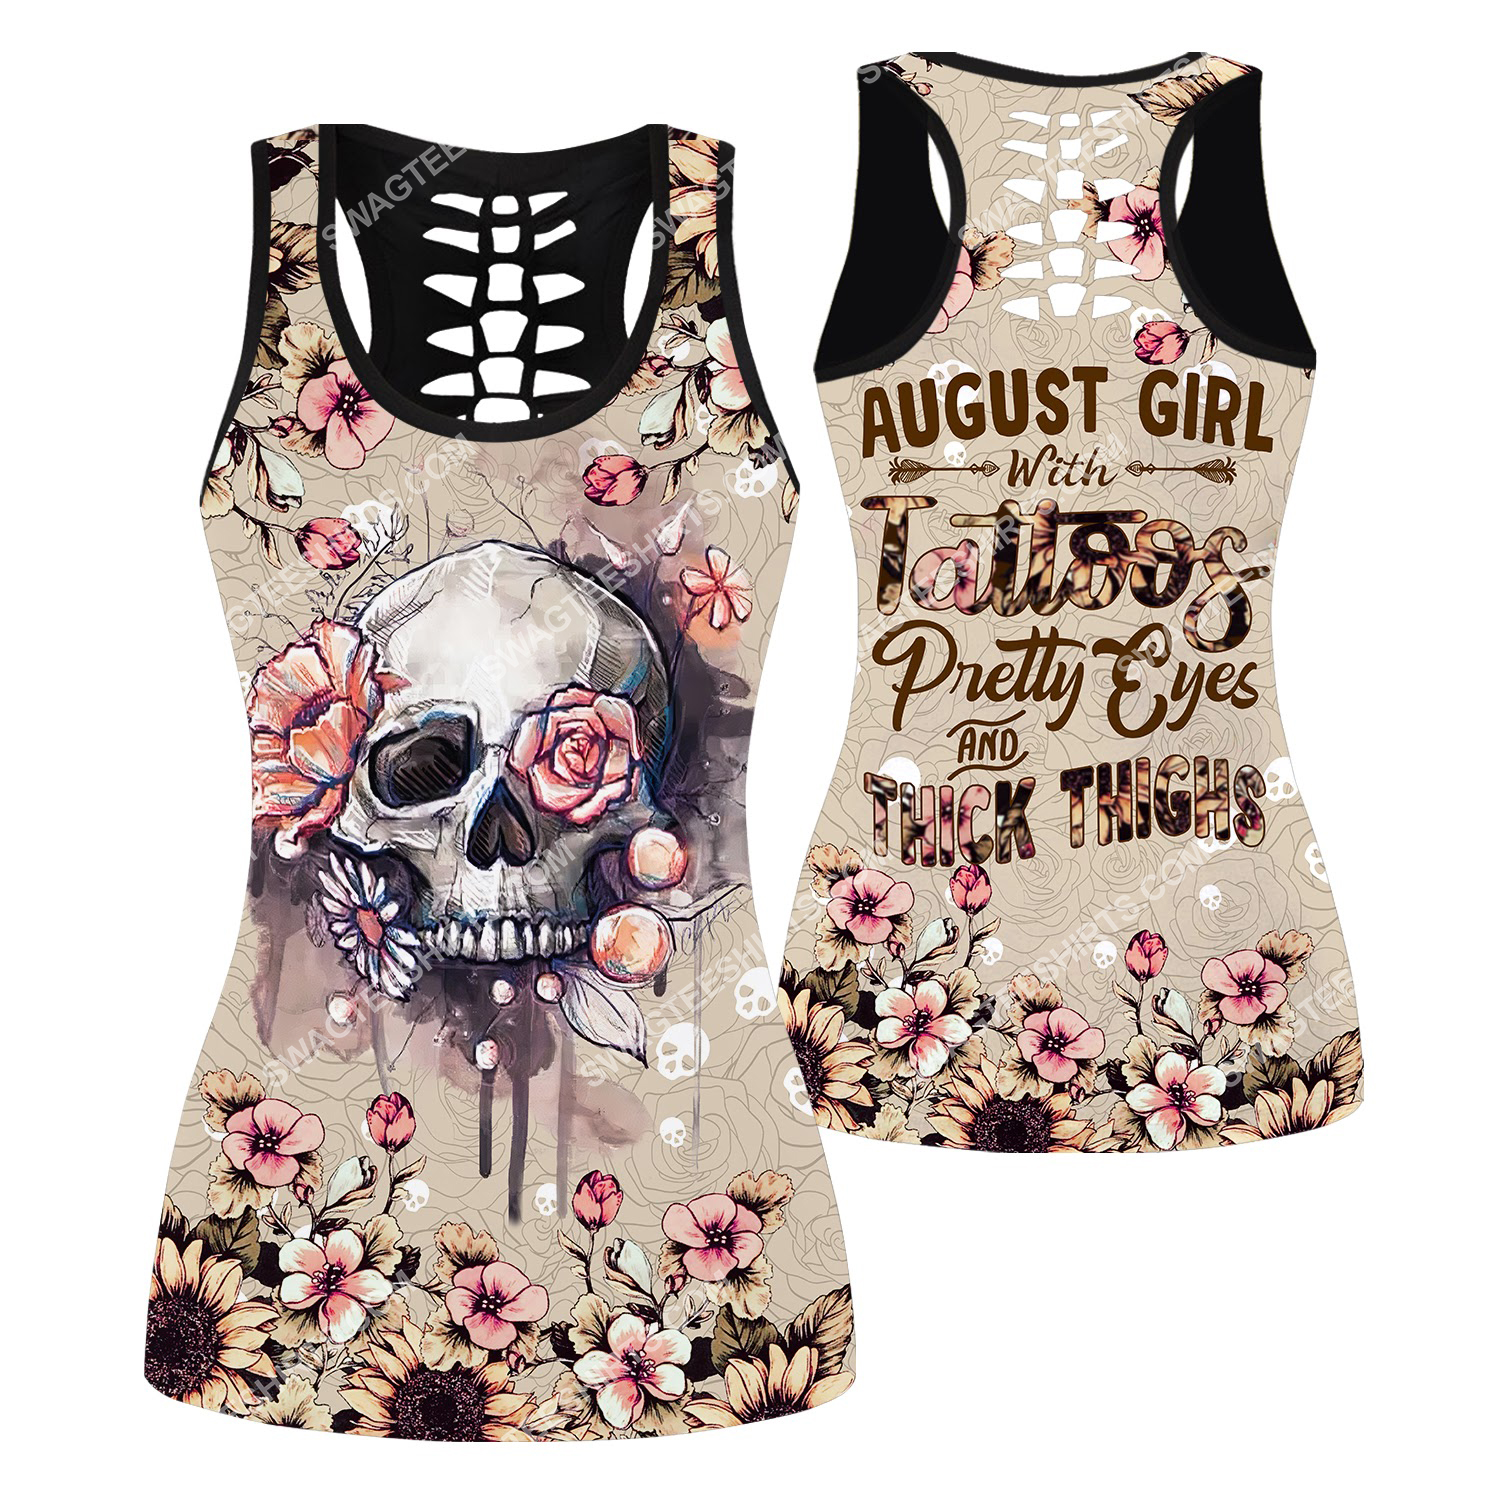 august girl with tattoos pretty eyes and thick thighs floral all over printed hollow tank top 1